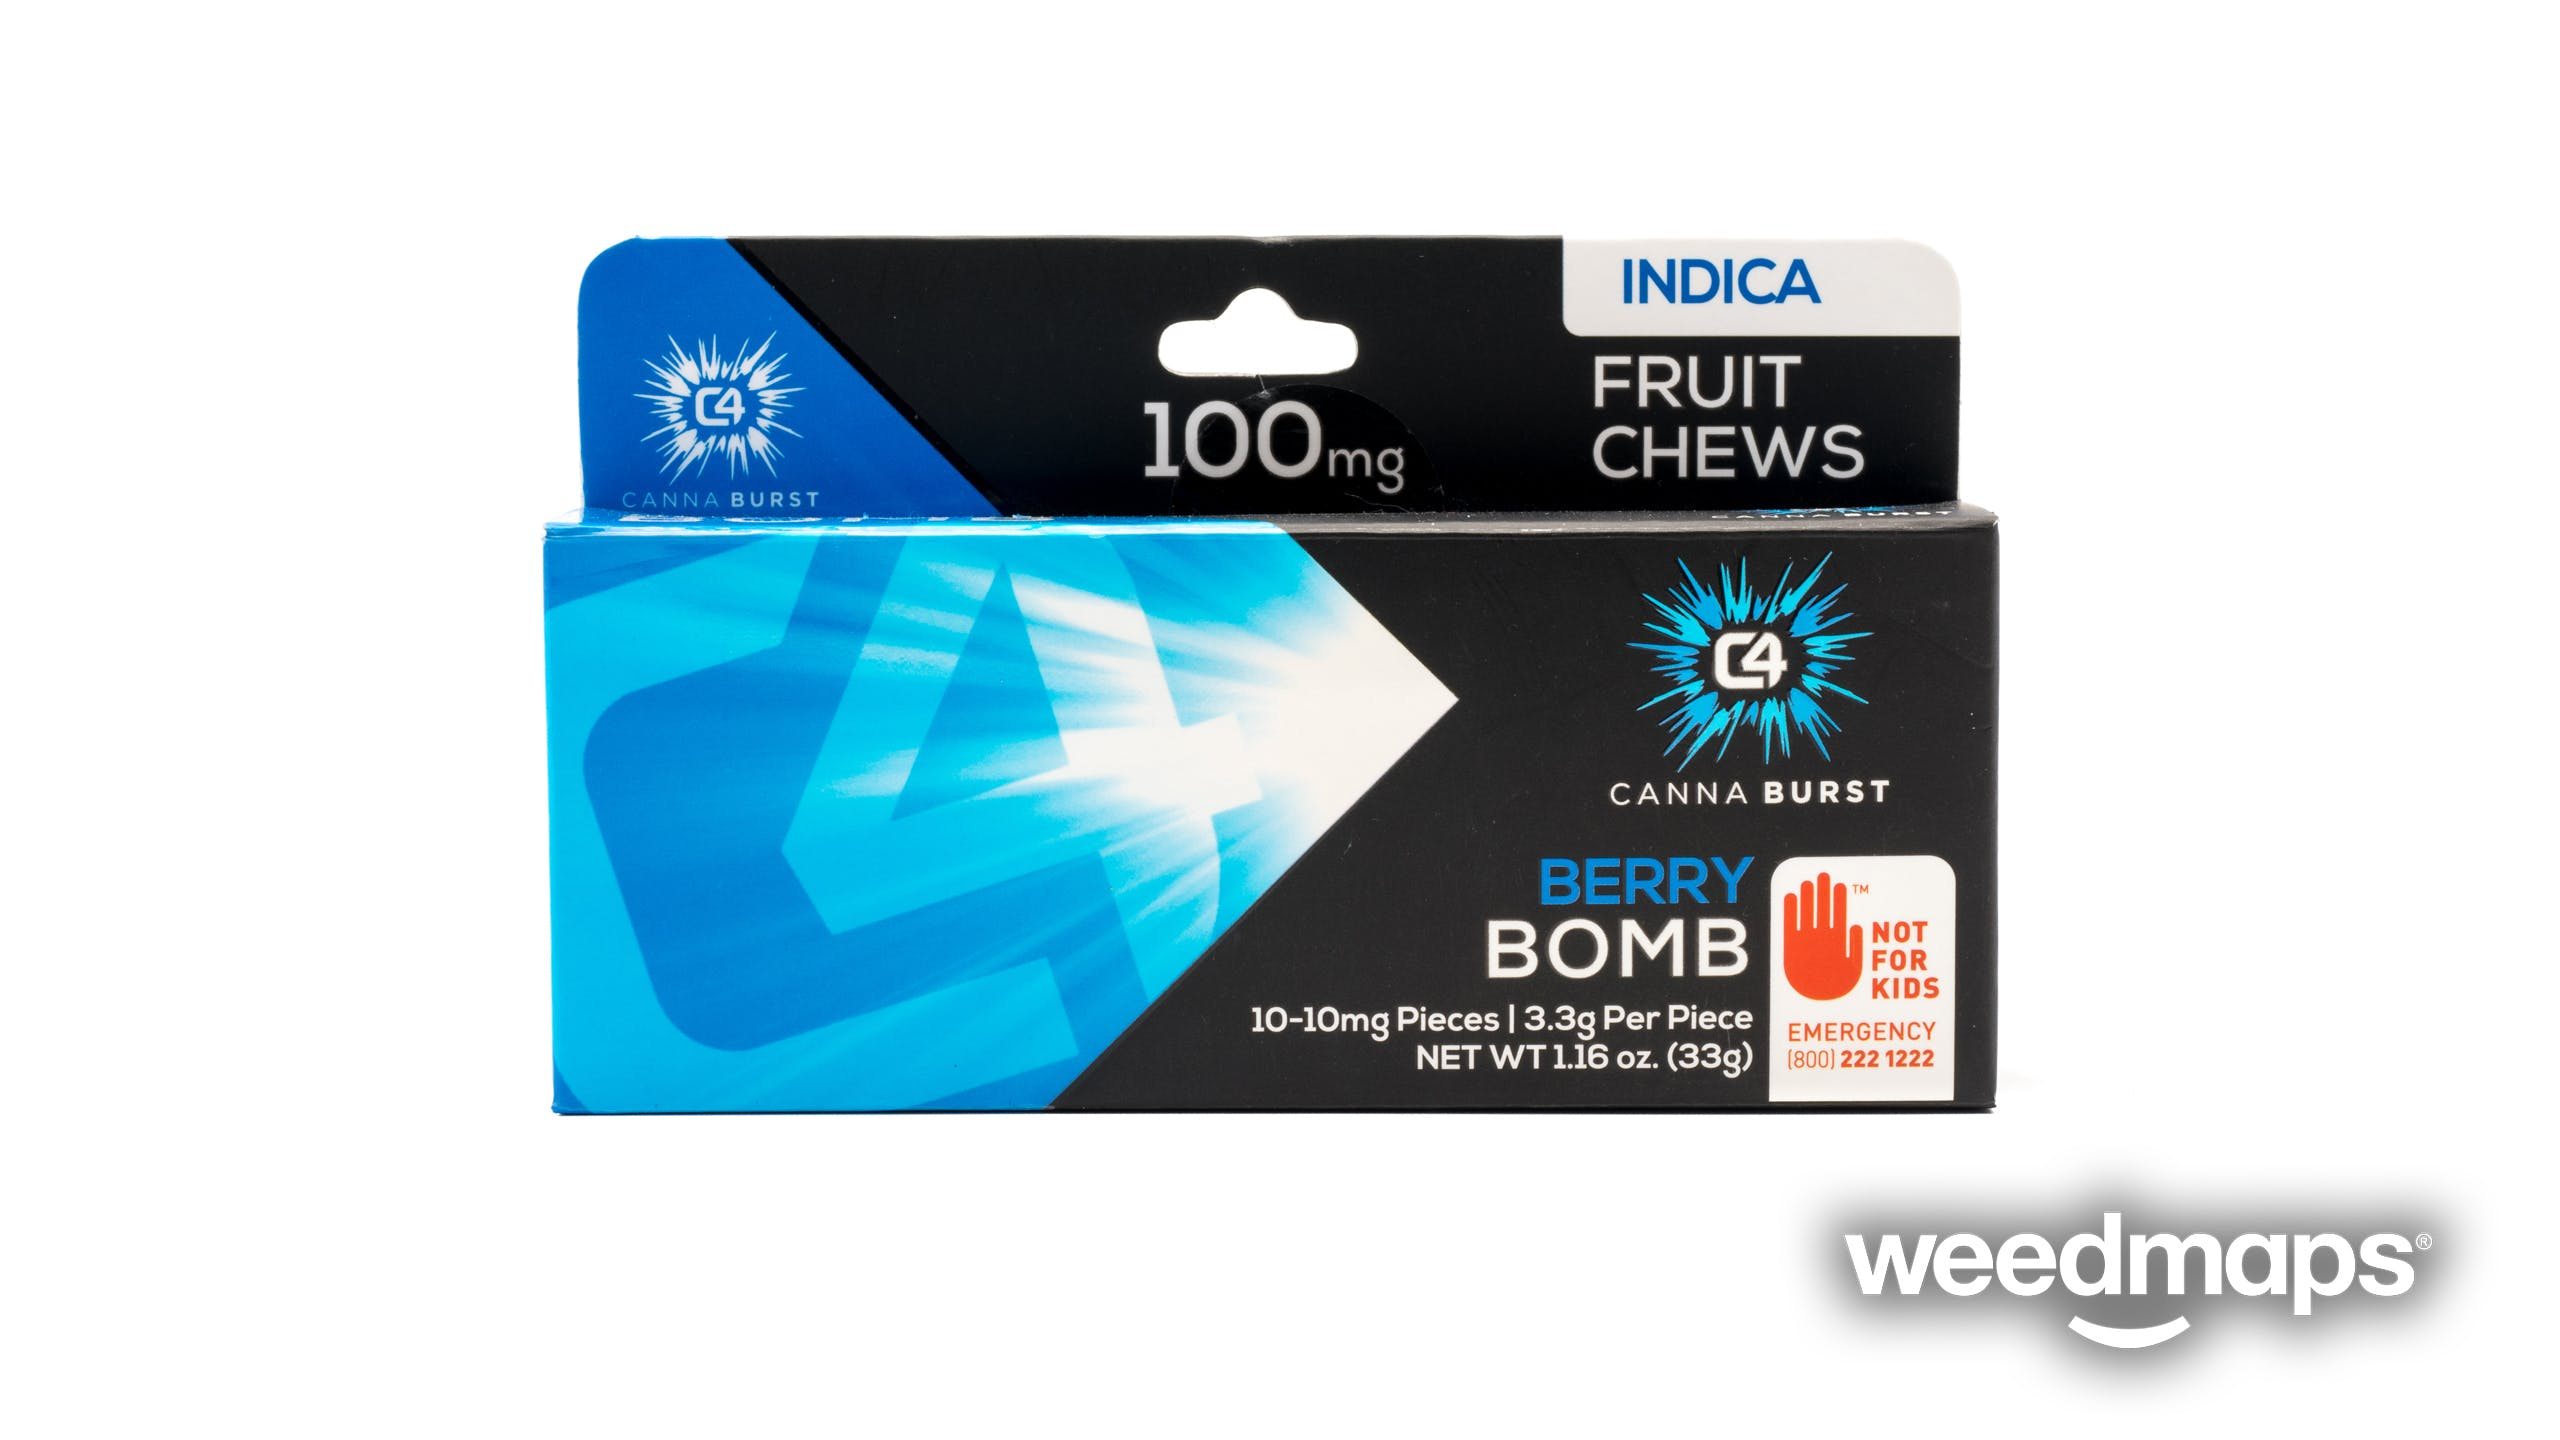 marijuana-dispensaries-freedom-market-cathlamet-recreational-in-cathlamet-berry-bomb-indica-chews-10pk-canna-burst